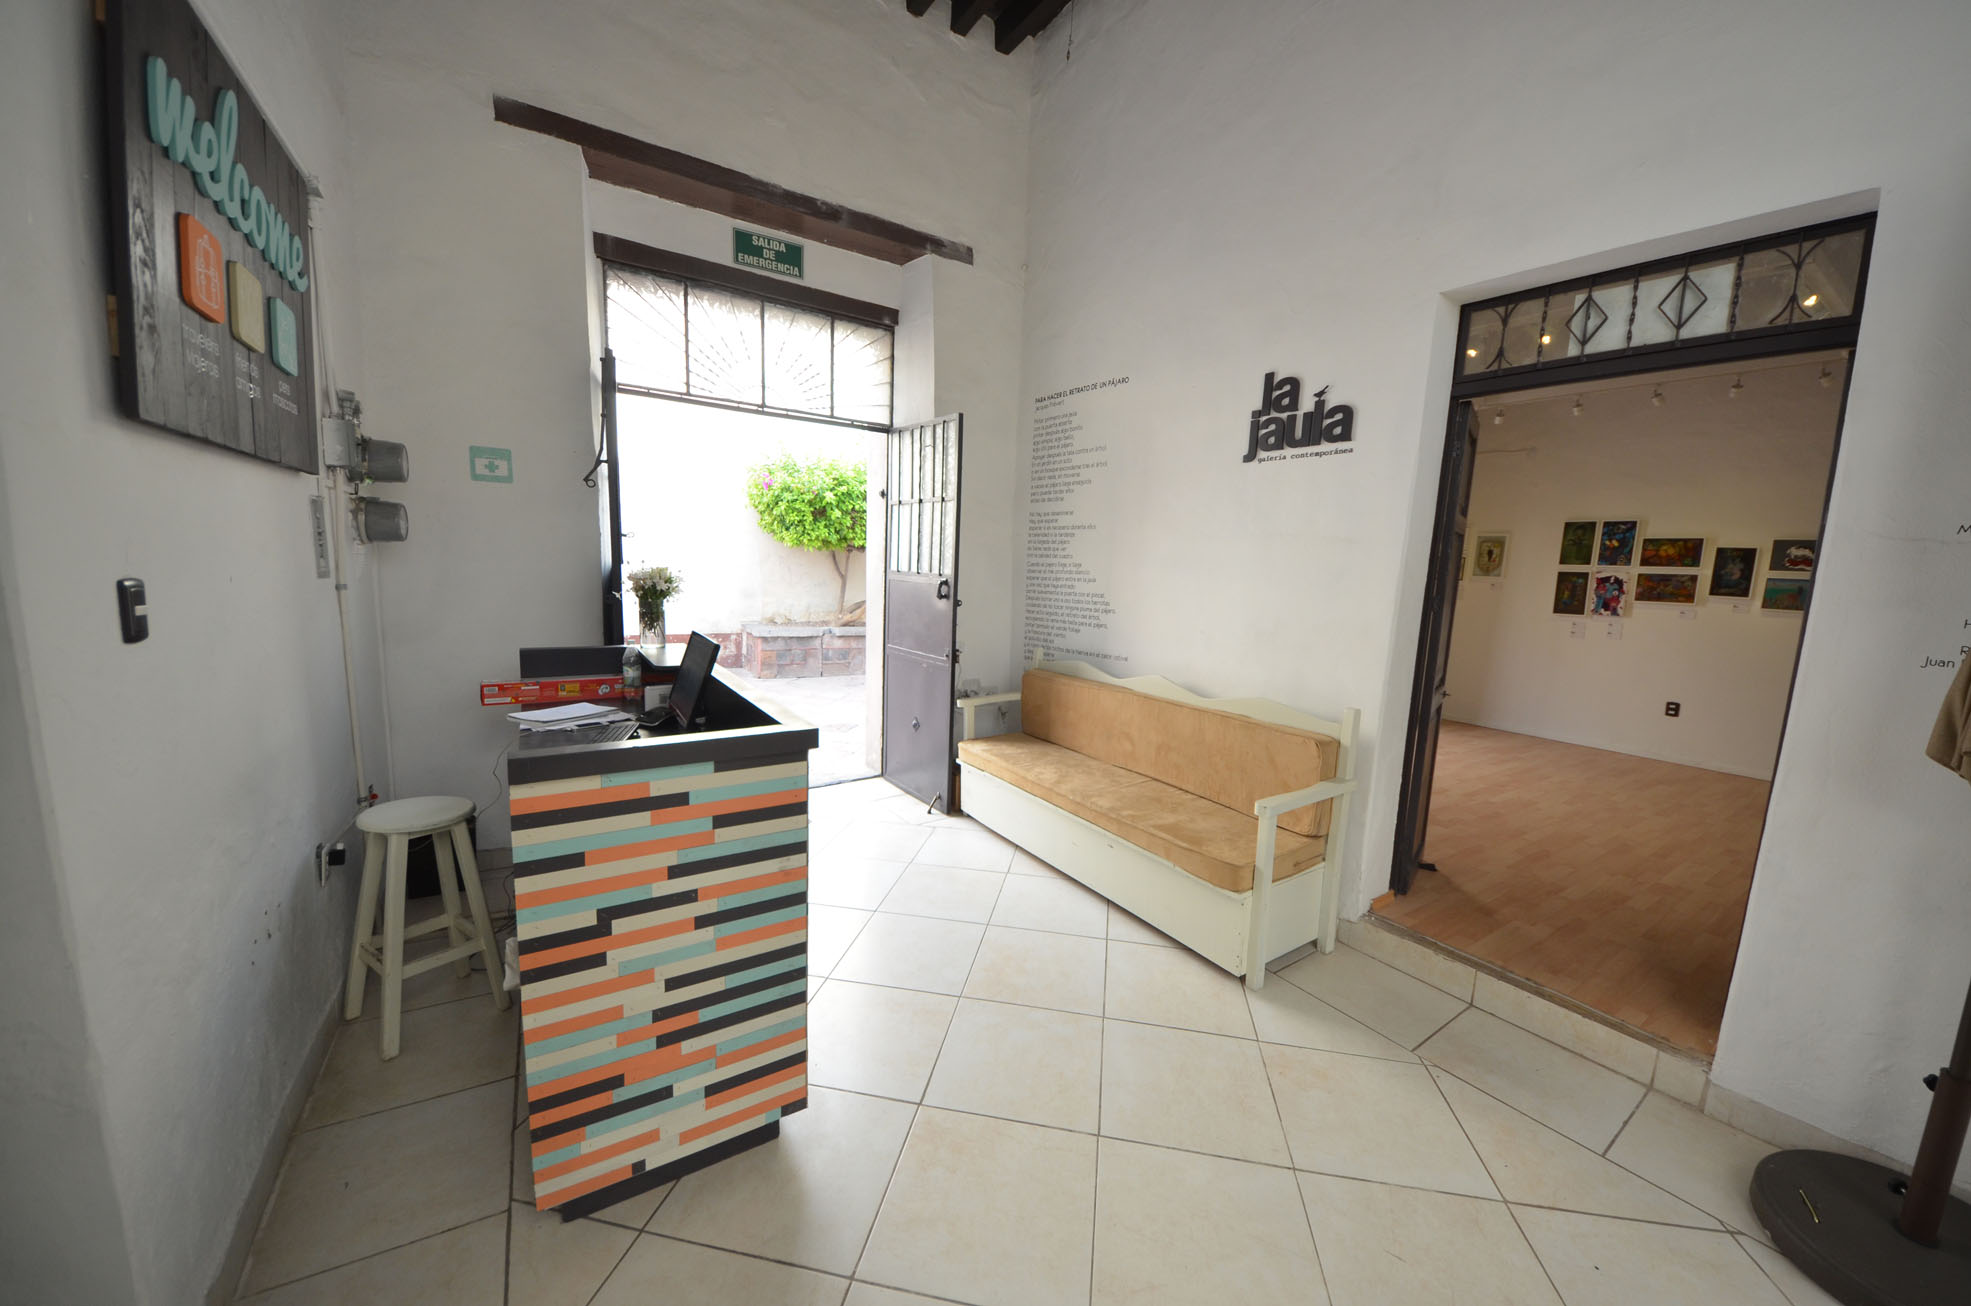 Acceso - Front Desk hostal